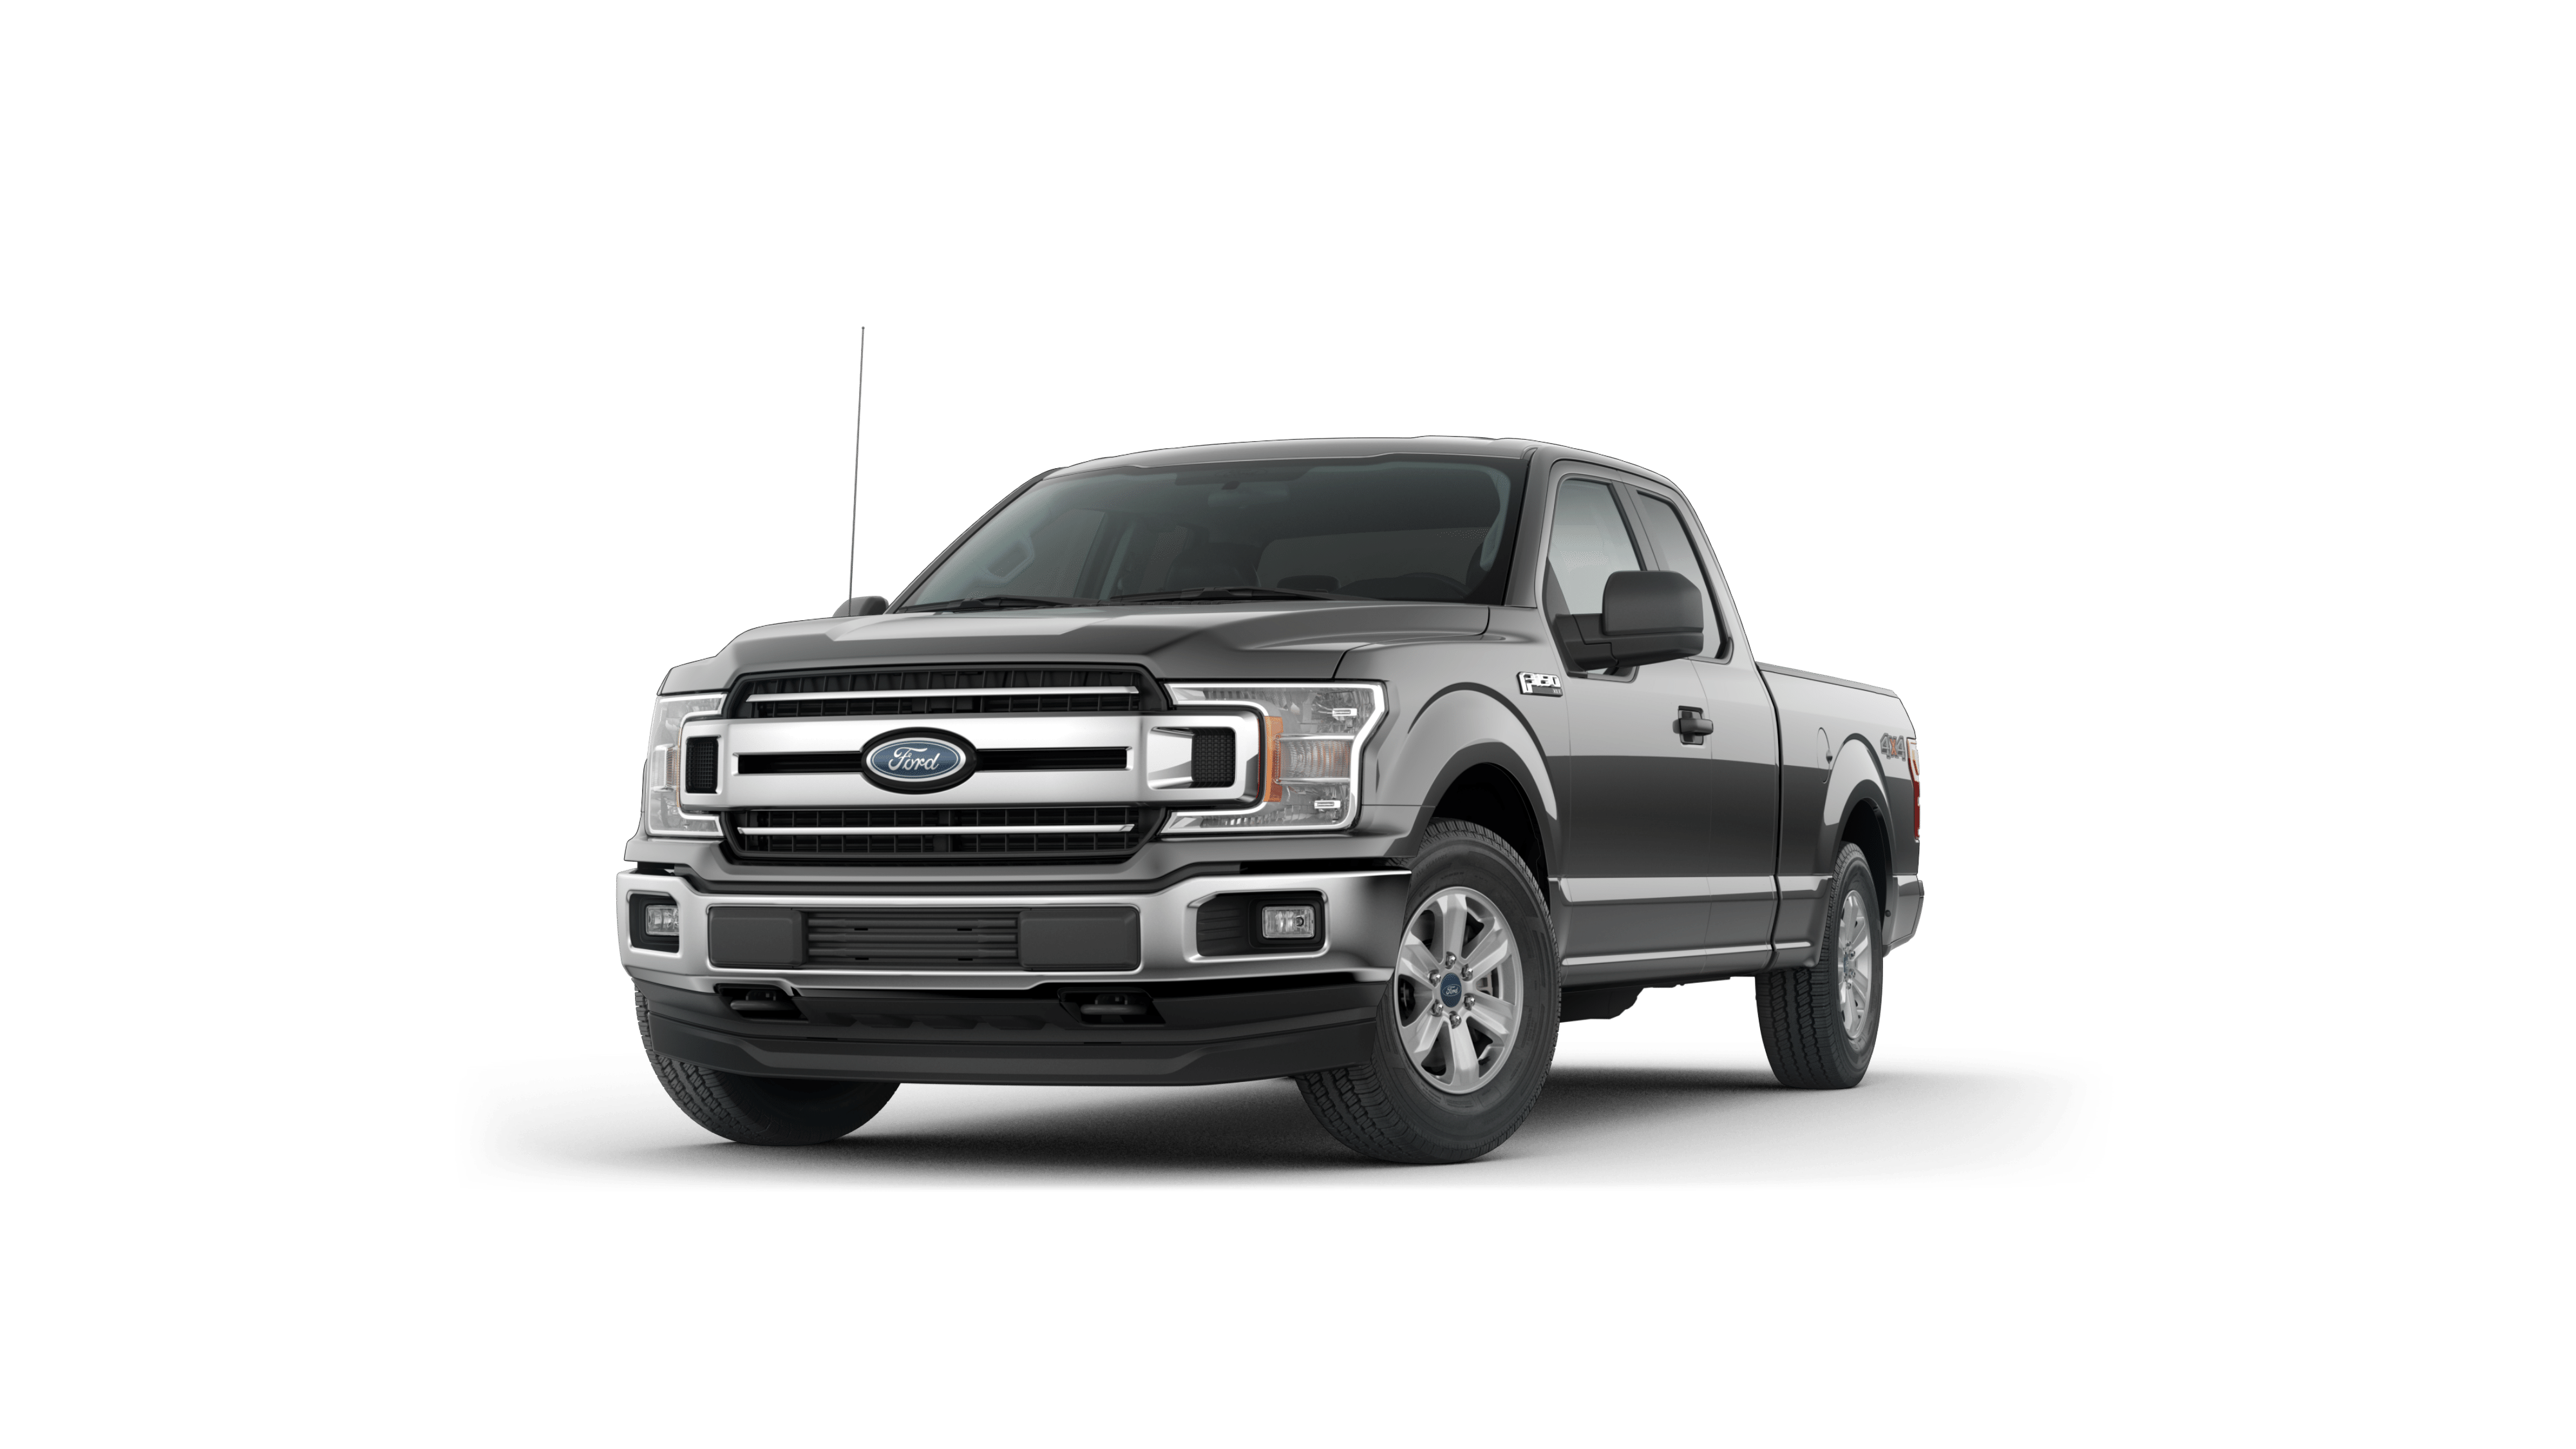 vehicle Cool Review About 2004 ford F150 Extended Cab with Captivating Gallery Cars Review